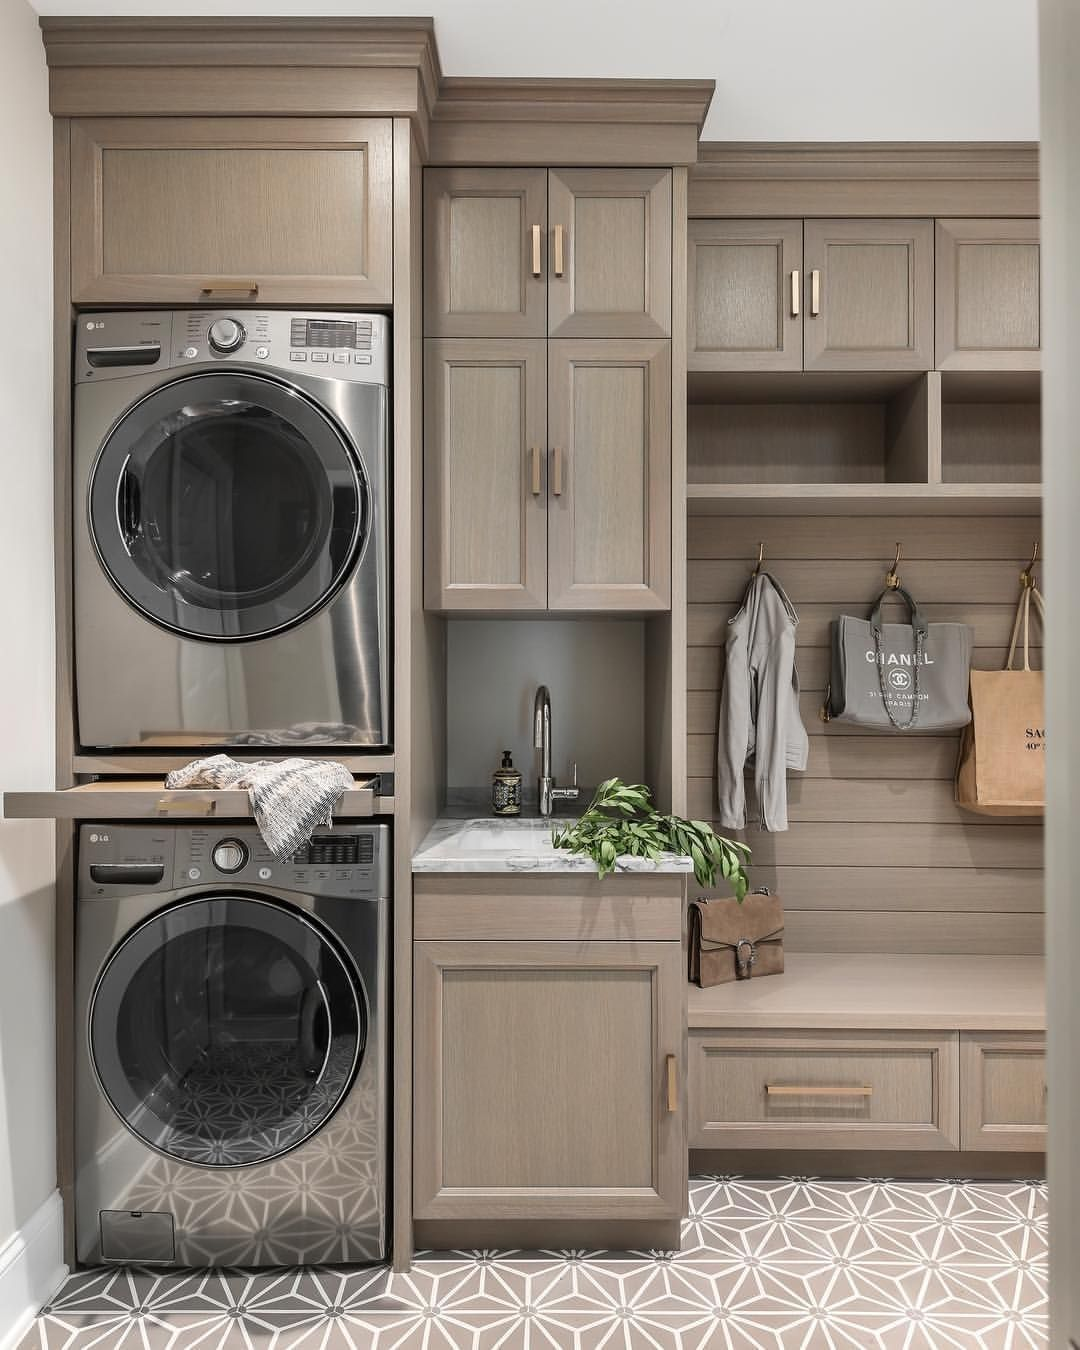 45 Best Small Laundry Room Design Ideas images